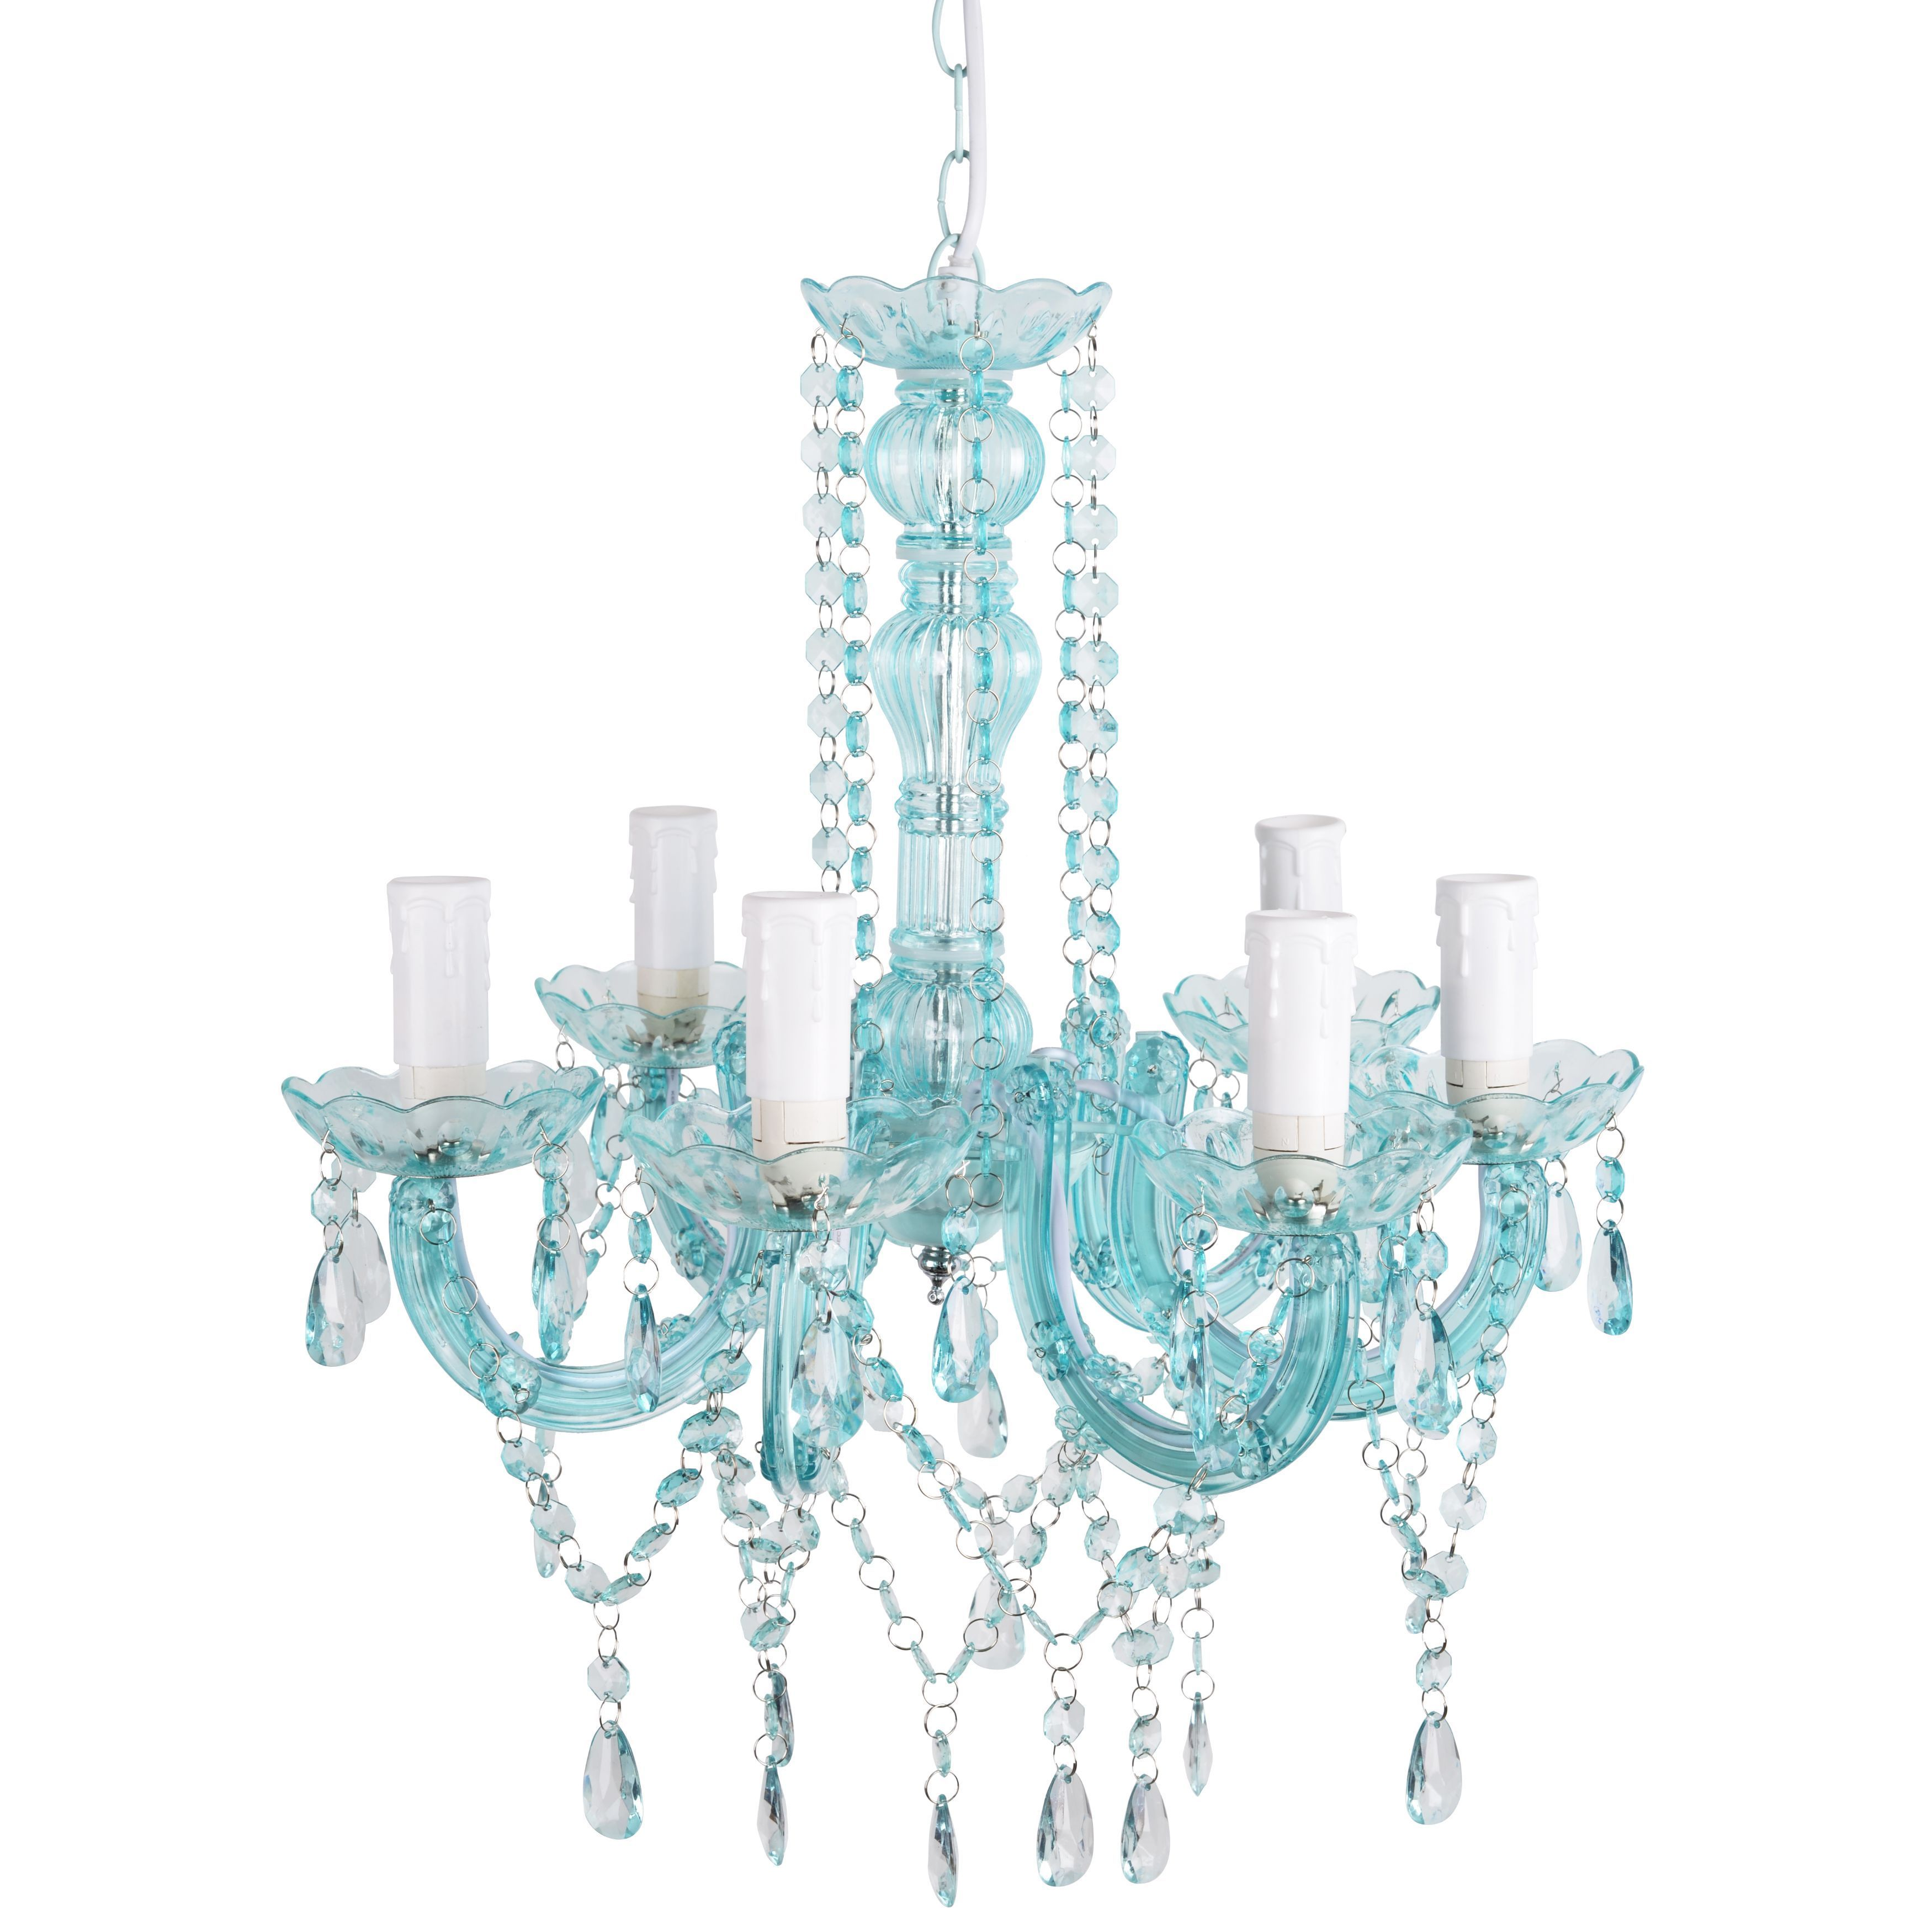 16 inch diameter by 15 inch Chandelier Free Shipping Today